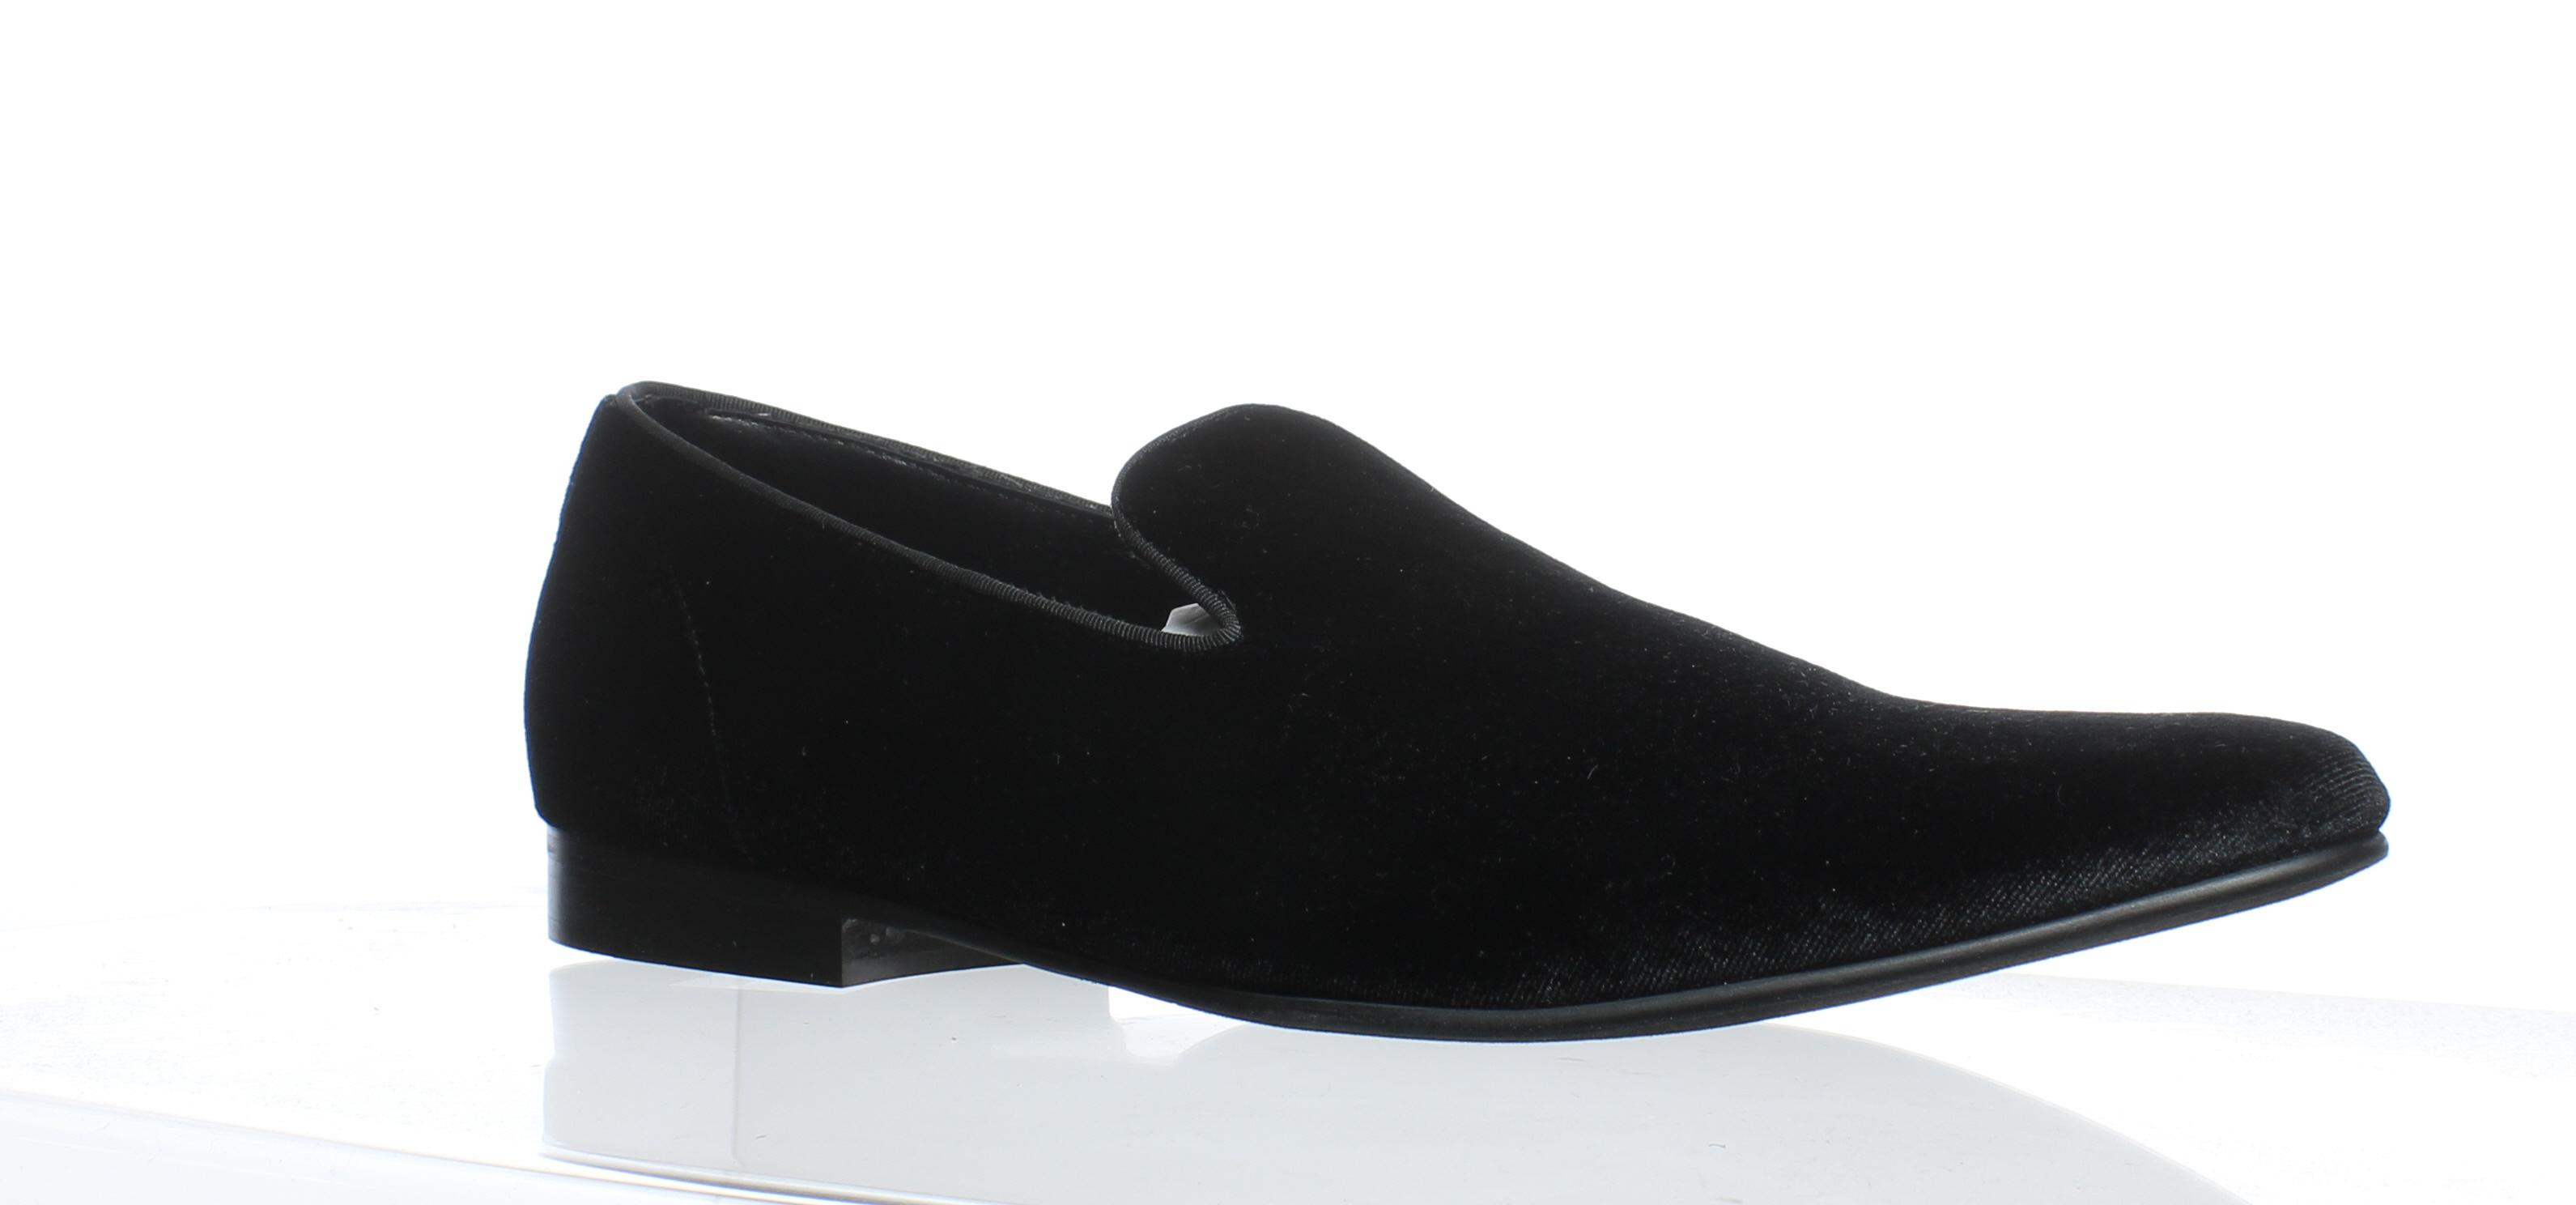 132cccabcb3 Details about Steve Madden Mens Laight Black Velvet Loafers Size 11.5  (242553)